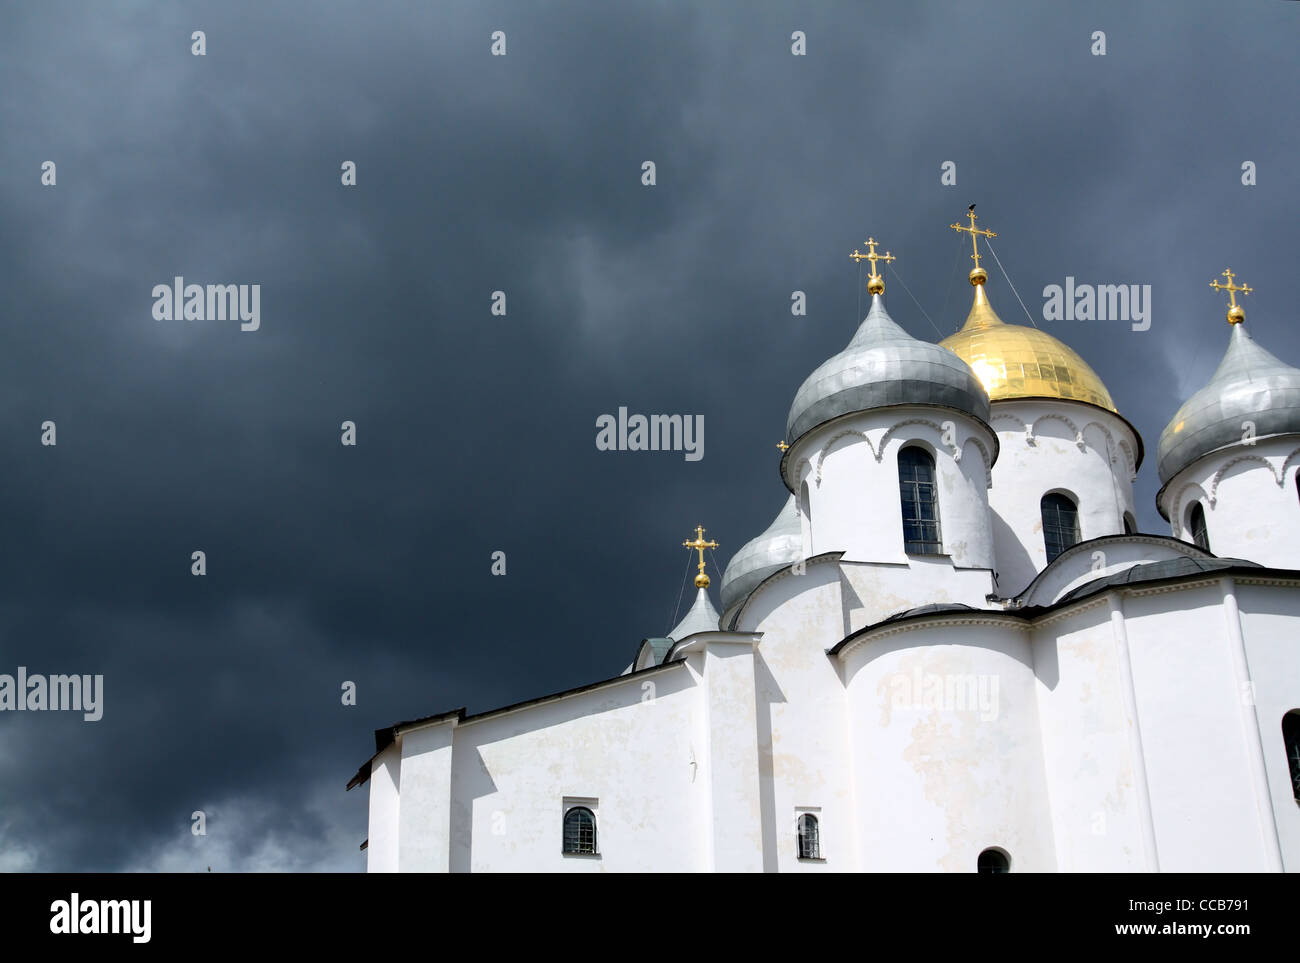 christian orthodox church on cloudy background Stock Photo